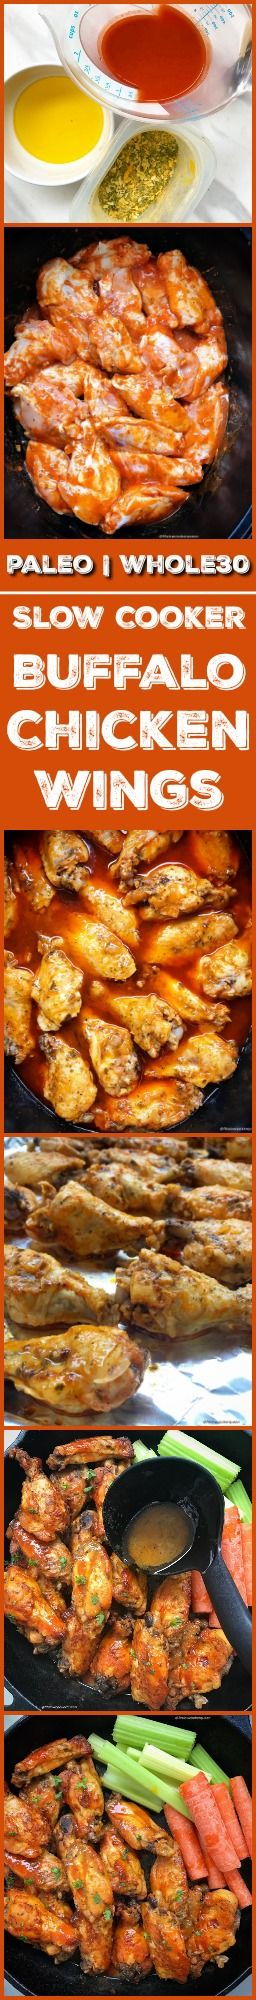 slow cooker crockpot paleo whole30  superbowl - Here are healthy slow cooker buffalo chicken wings that are lactose-free, paleo, whole30, and use a homemade ranch mix! Serve these wings at your next game-day gathering, potluck or weekday snack.